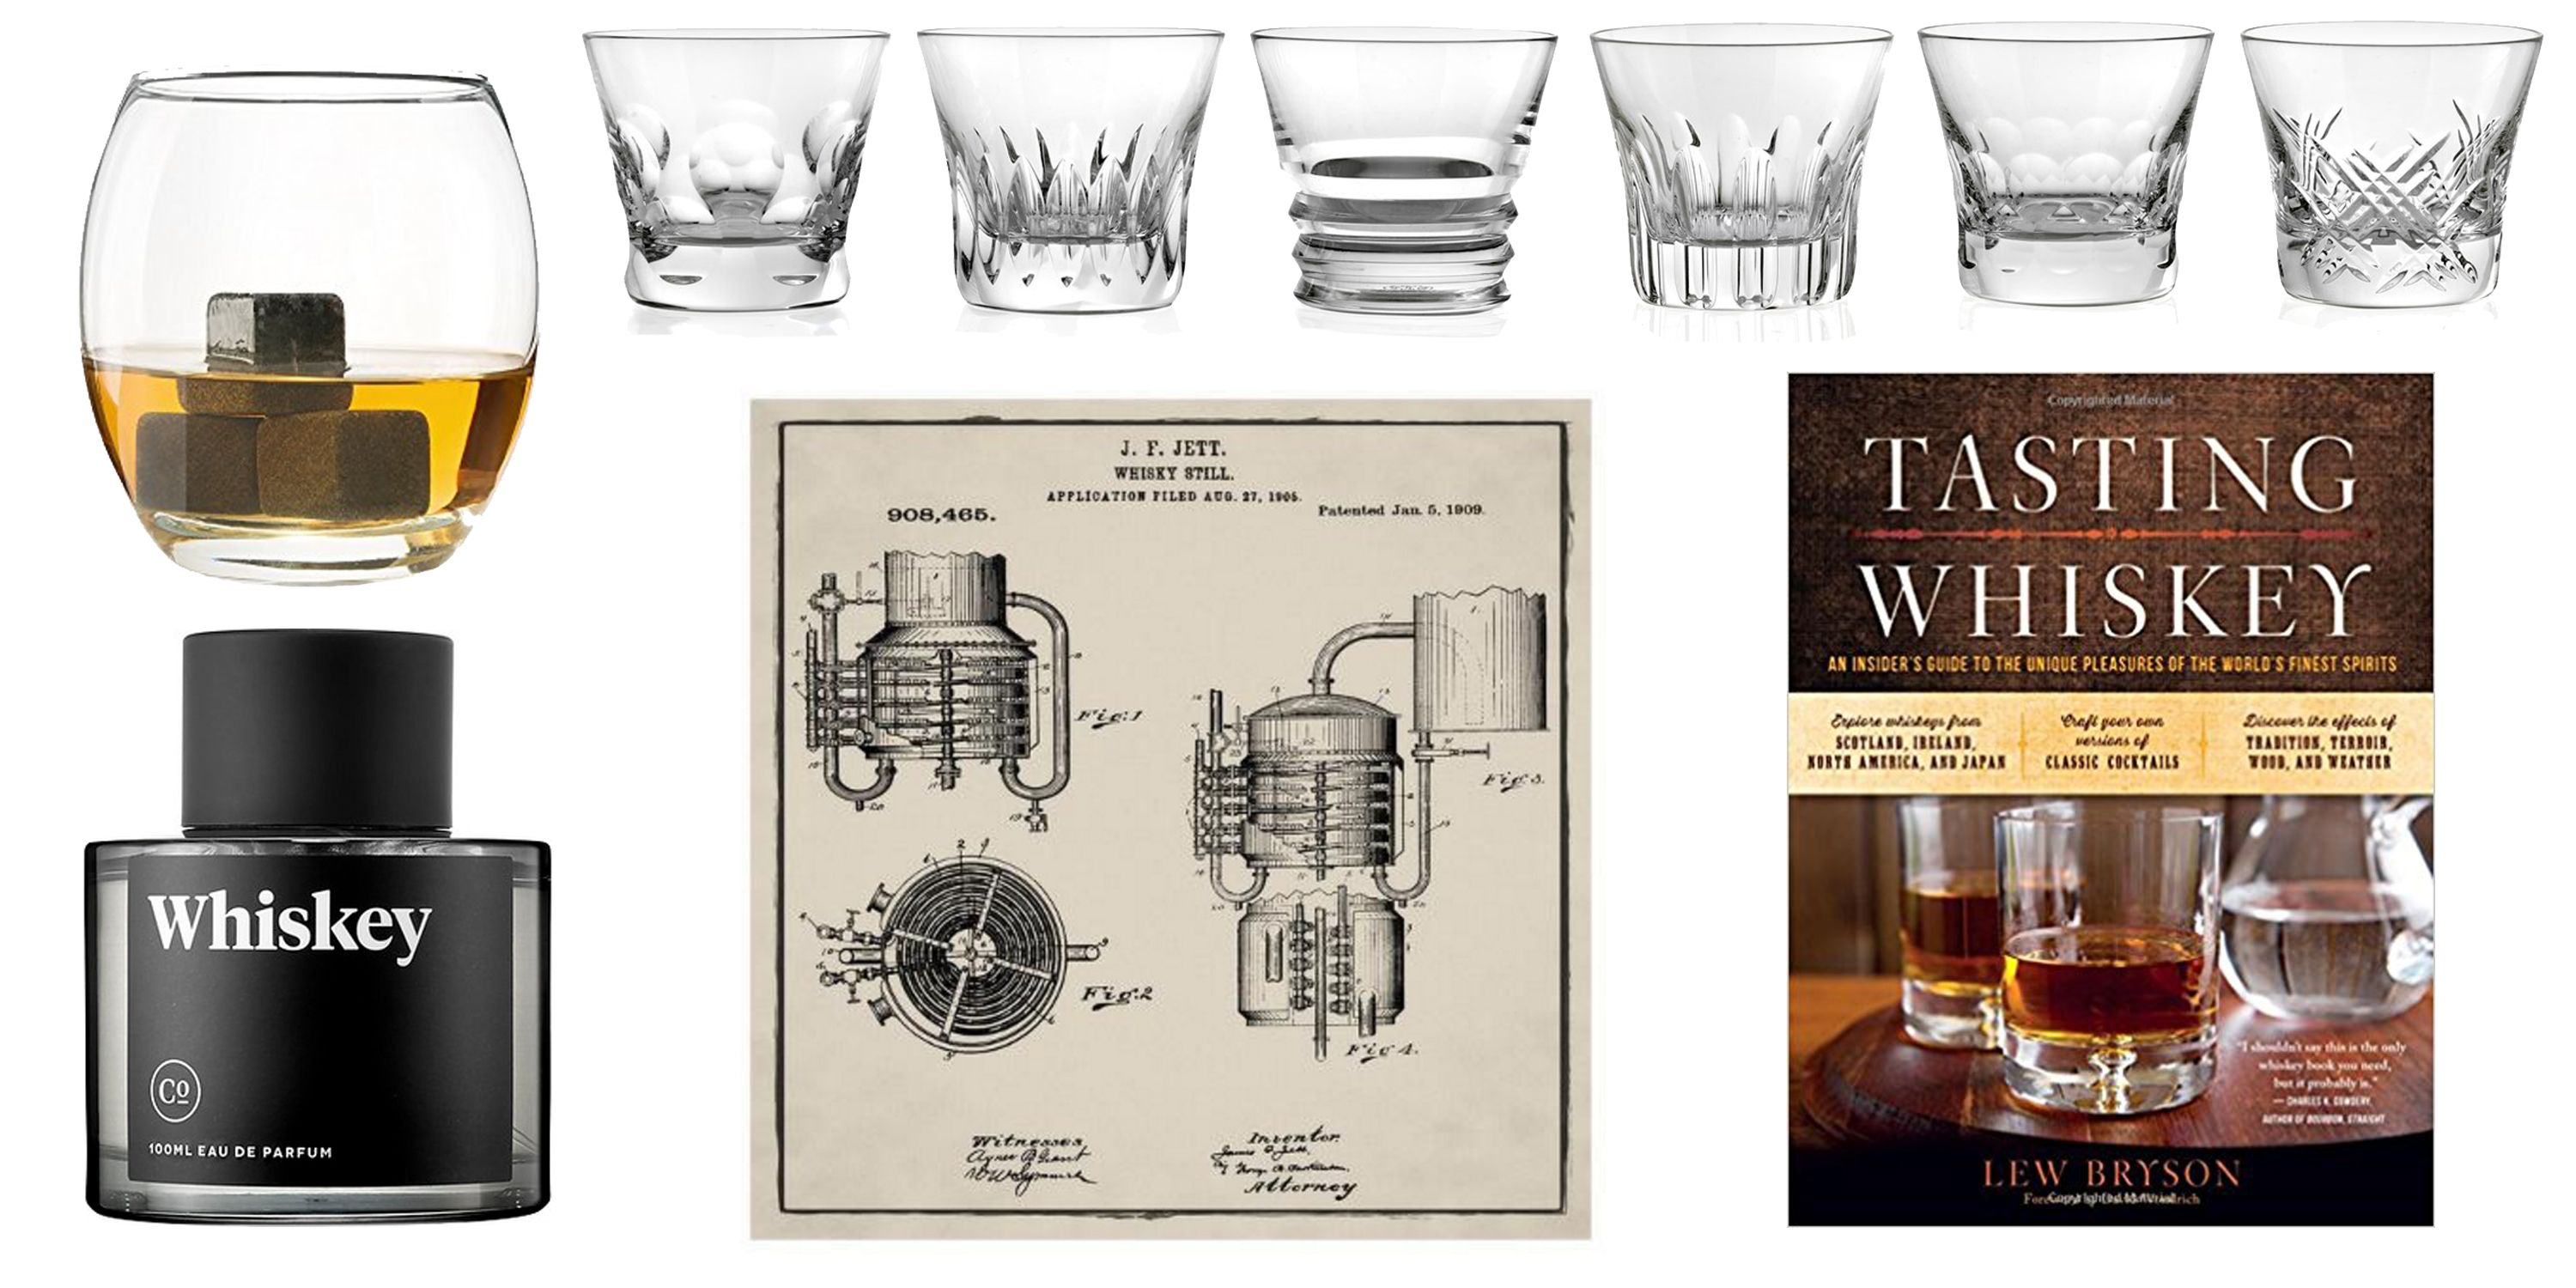 Want More Than a Bottle? These Are the Very Best Gifts for Whiskey Lovers